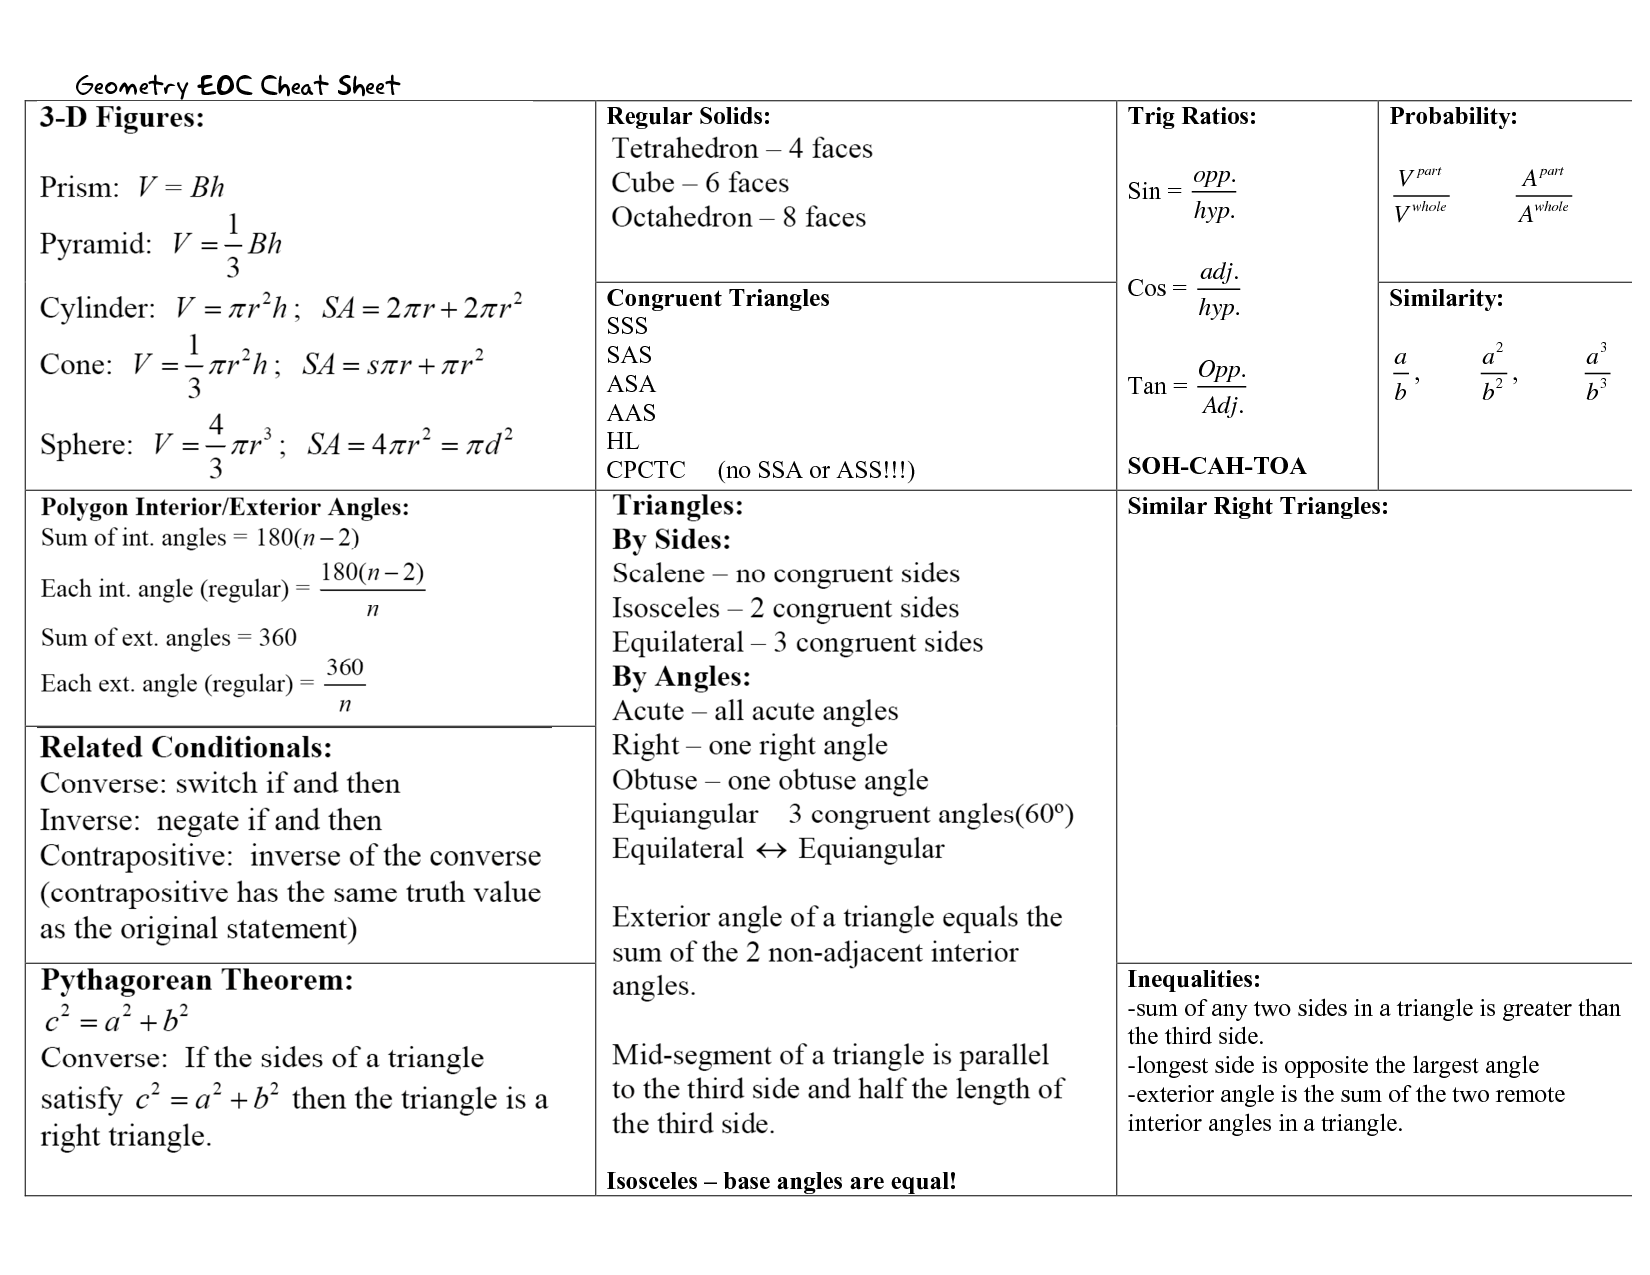 Geometry Formulas Cheat Sheet | Geometry EOC Cheat Sheet Regular ...